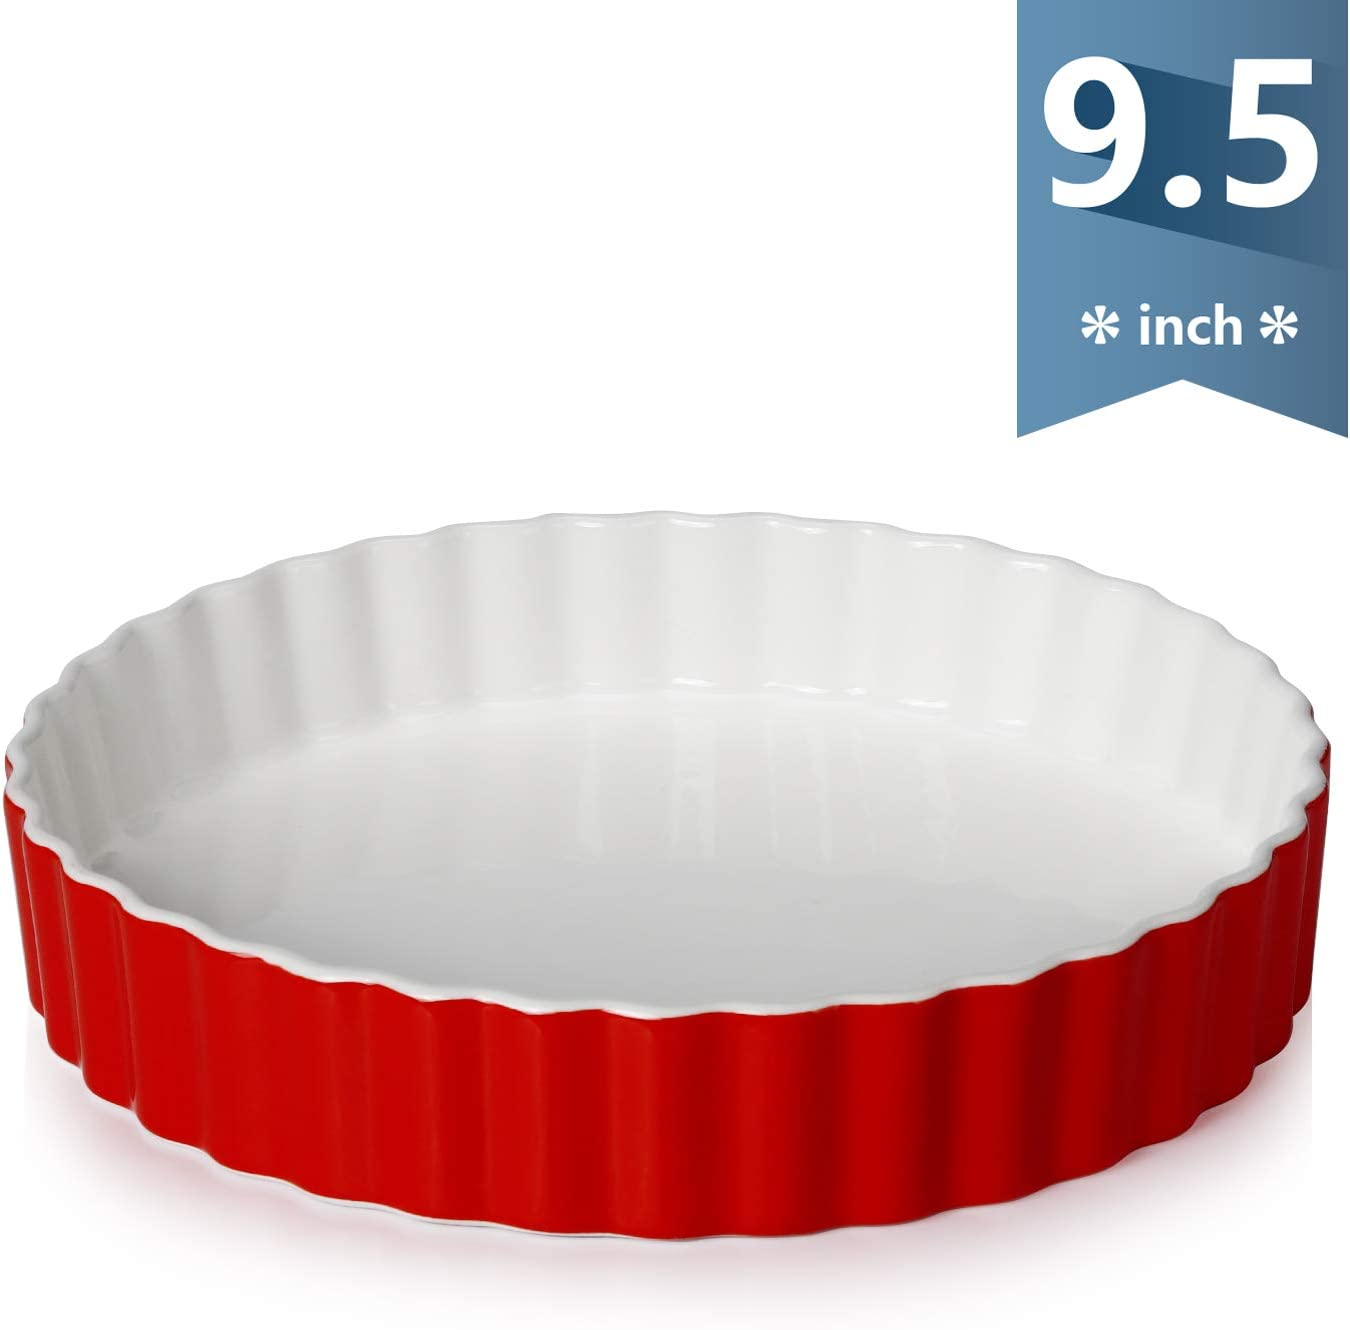 Sweese 515.104 Porcelain Tart Pan 9.5 Inches Quiche Dish Baking Pan, Round, Red